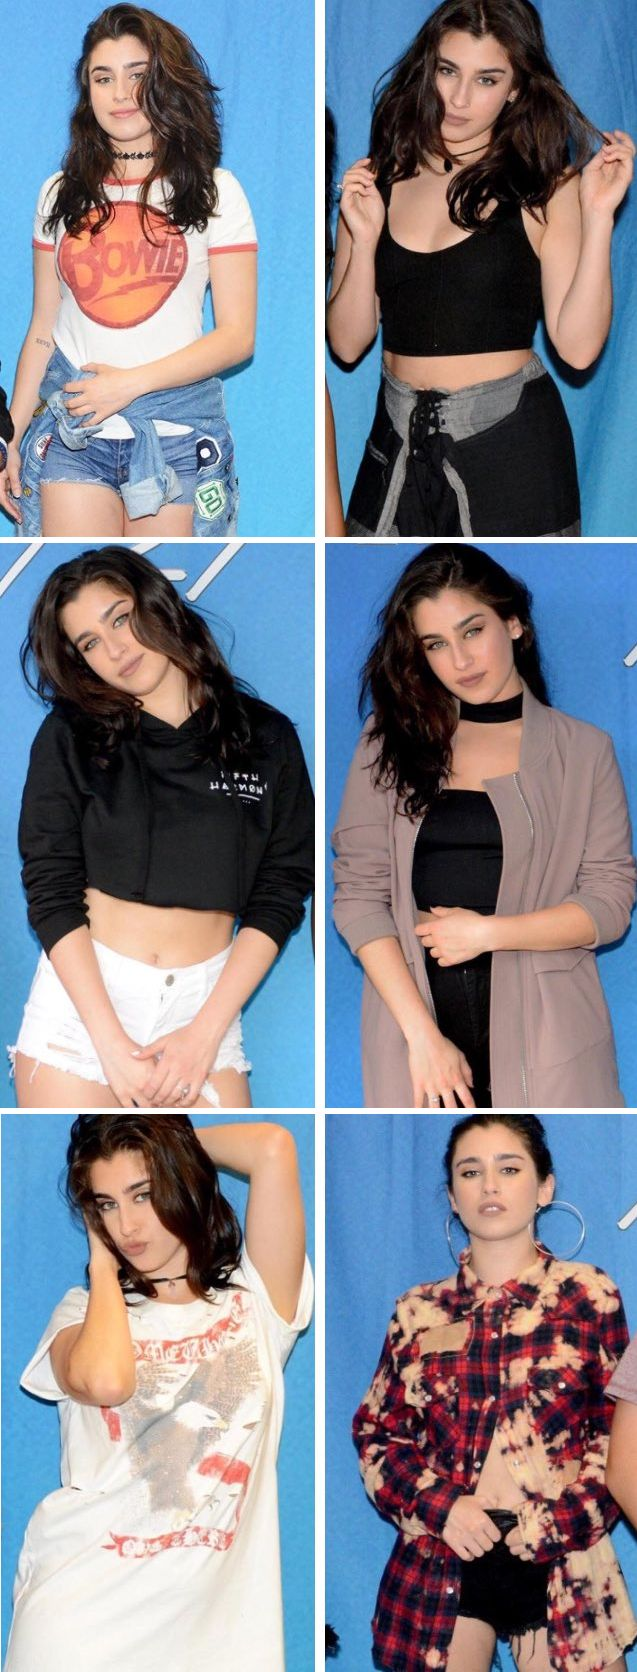 PROUDLY PRESENTING the best of lauren jauregui: meet & greet edition @pretyfuckindope